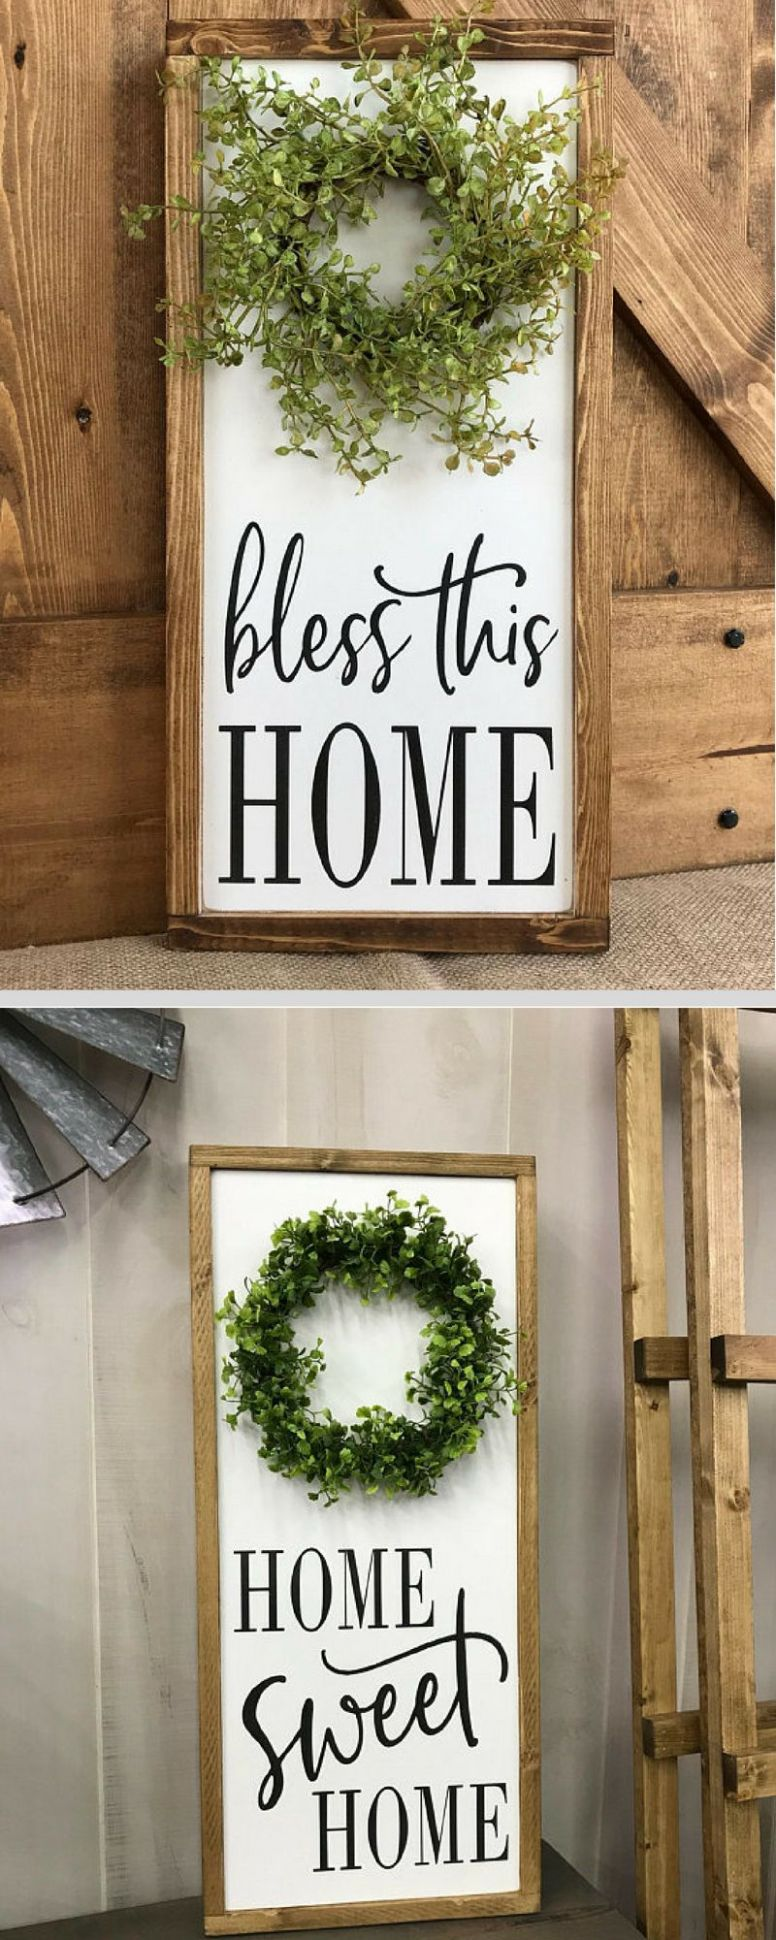 Farmhouse home decor signs, bless this home, home sweet home ..